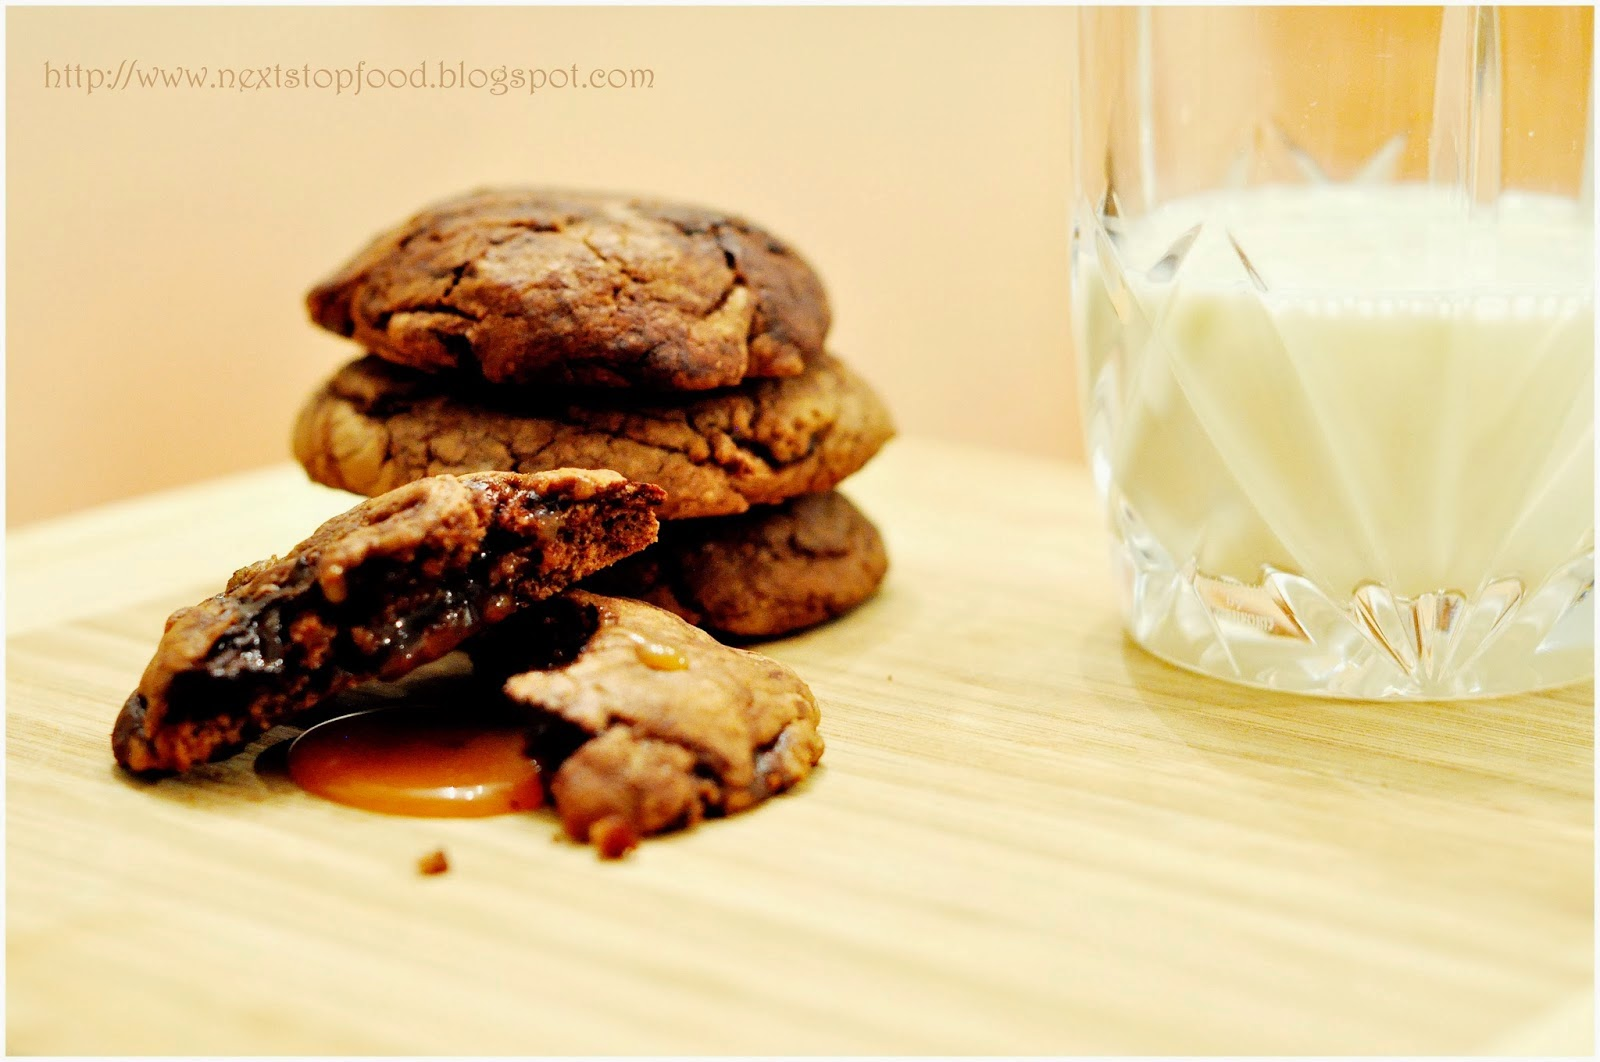 http://nextstopfood.blogspot.com.au/2013/12/recipe-chocolate-chip-cookies-with.html